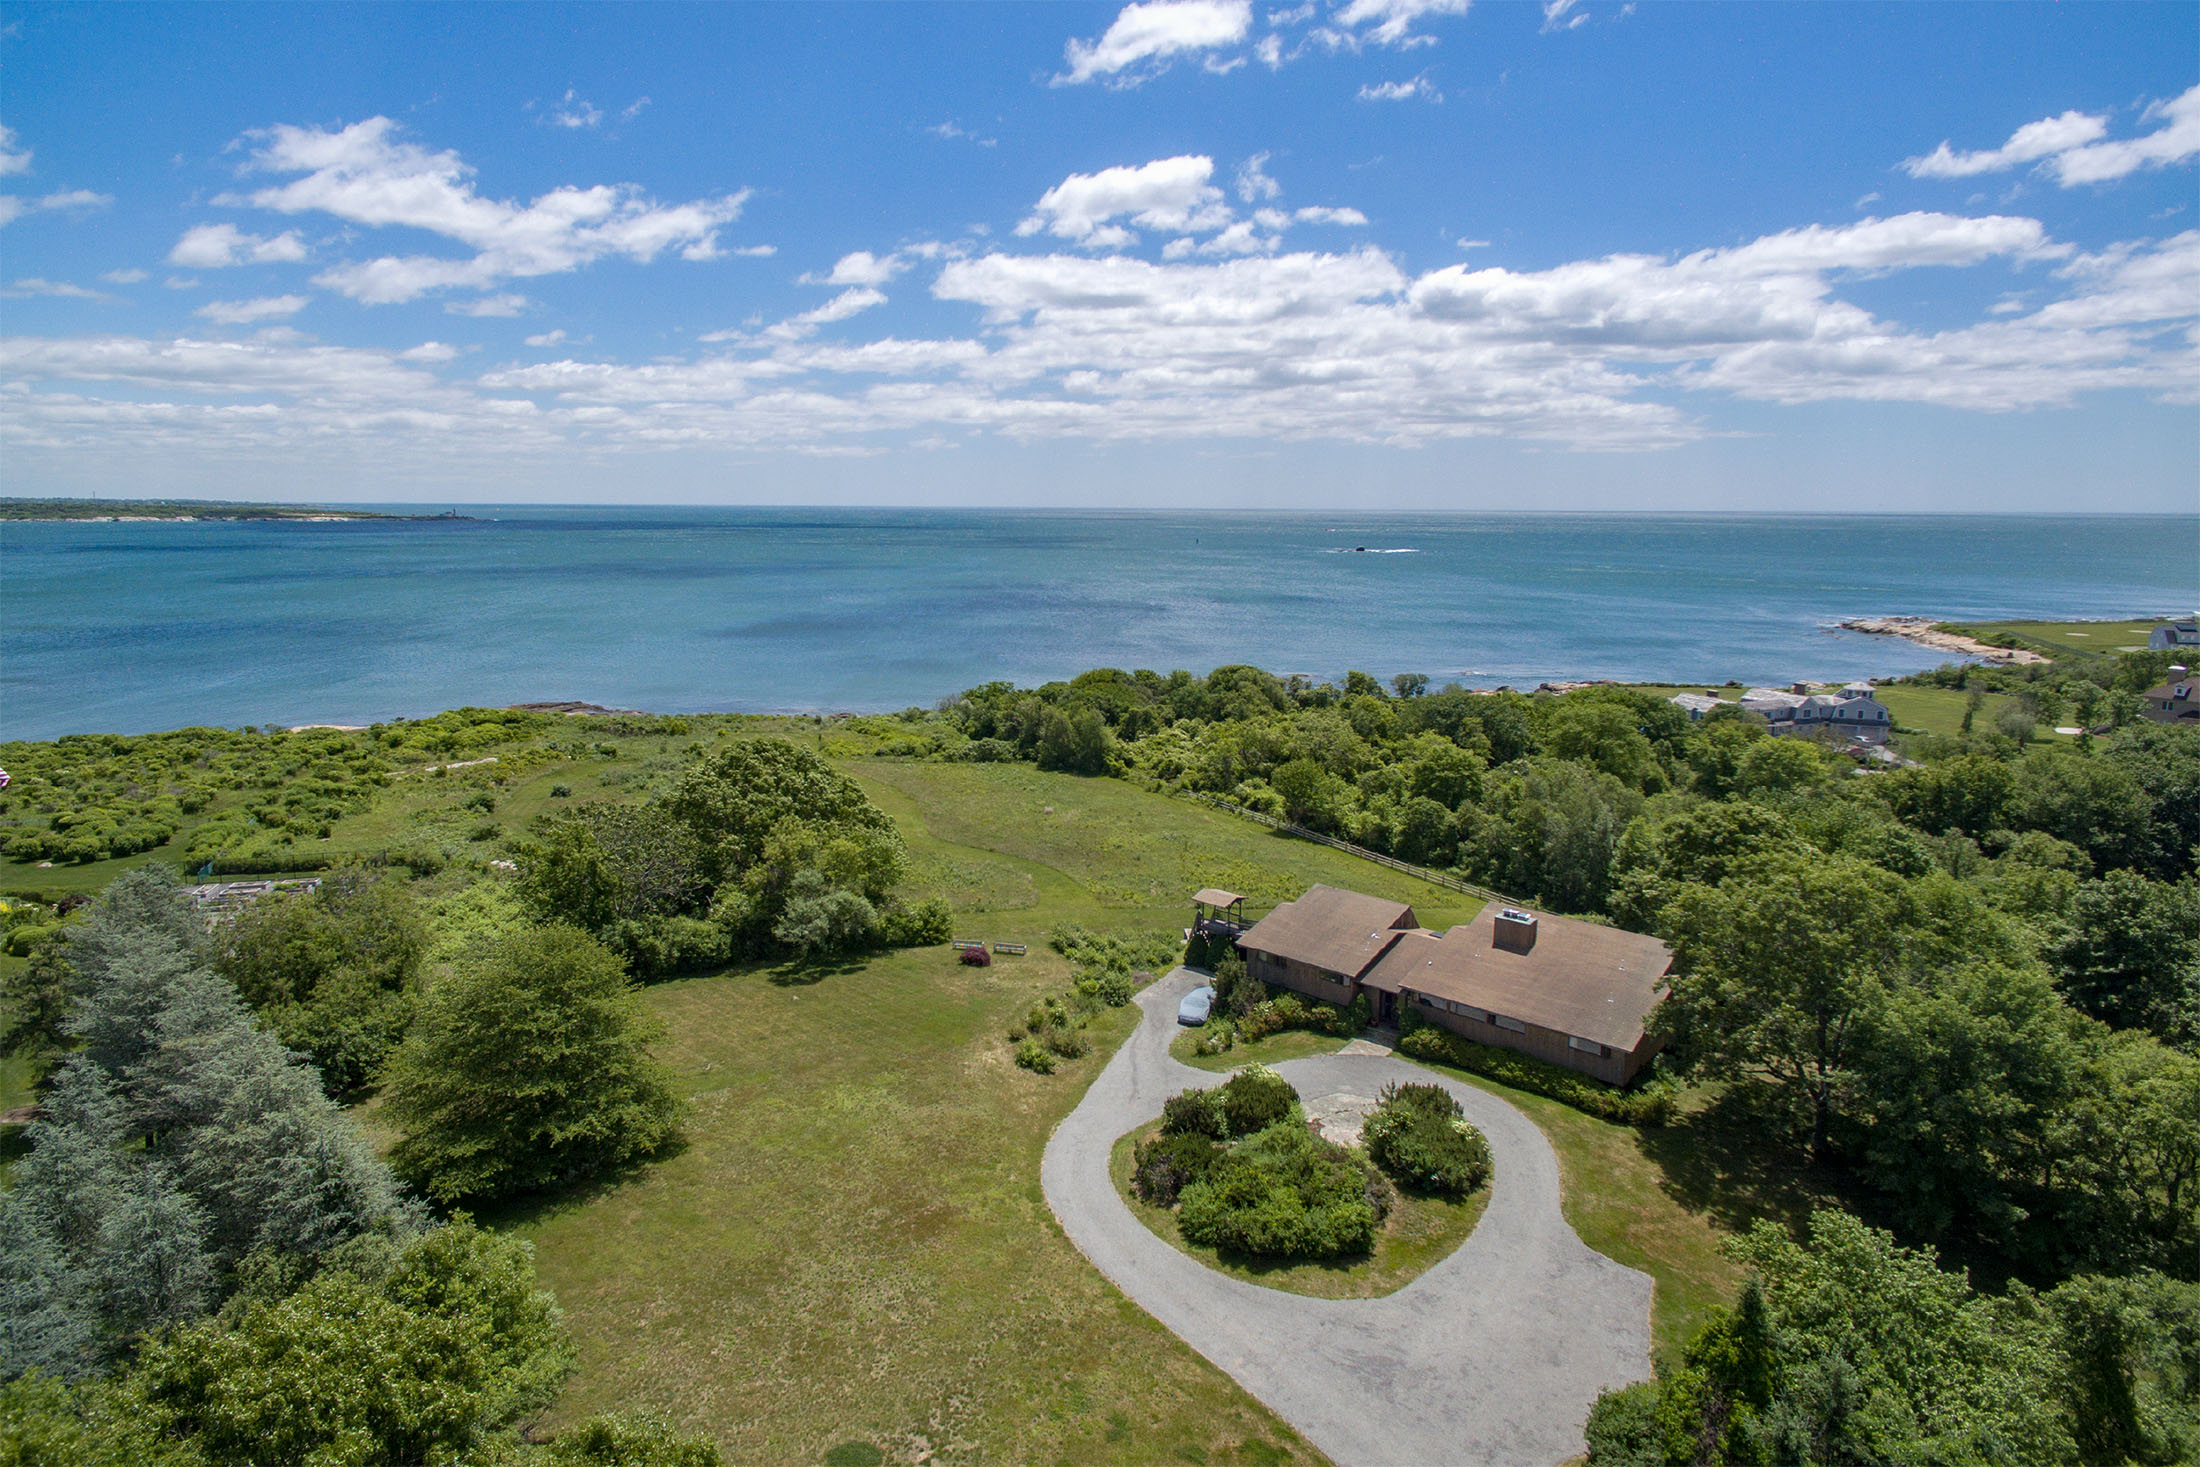 Land for Sale at 35 Peaked Rock Rd, Narragansett, RI Narragansett, 02882 United States